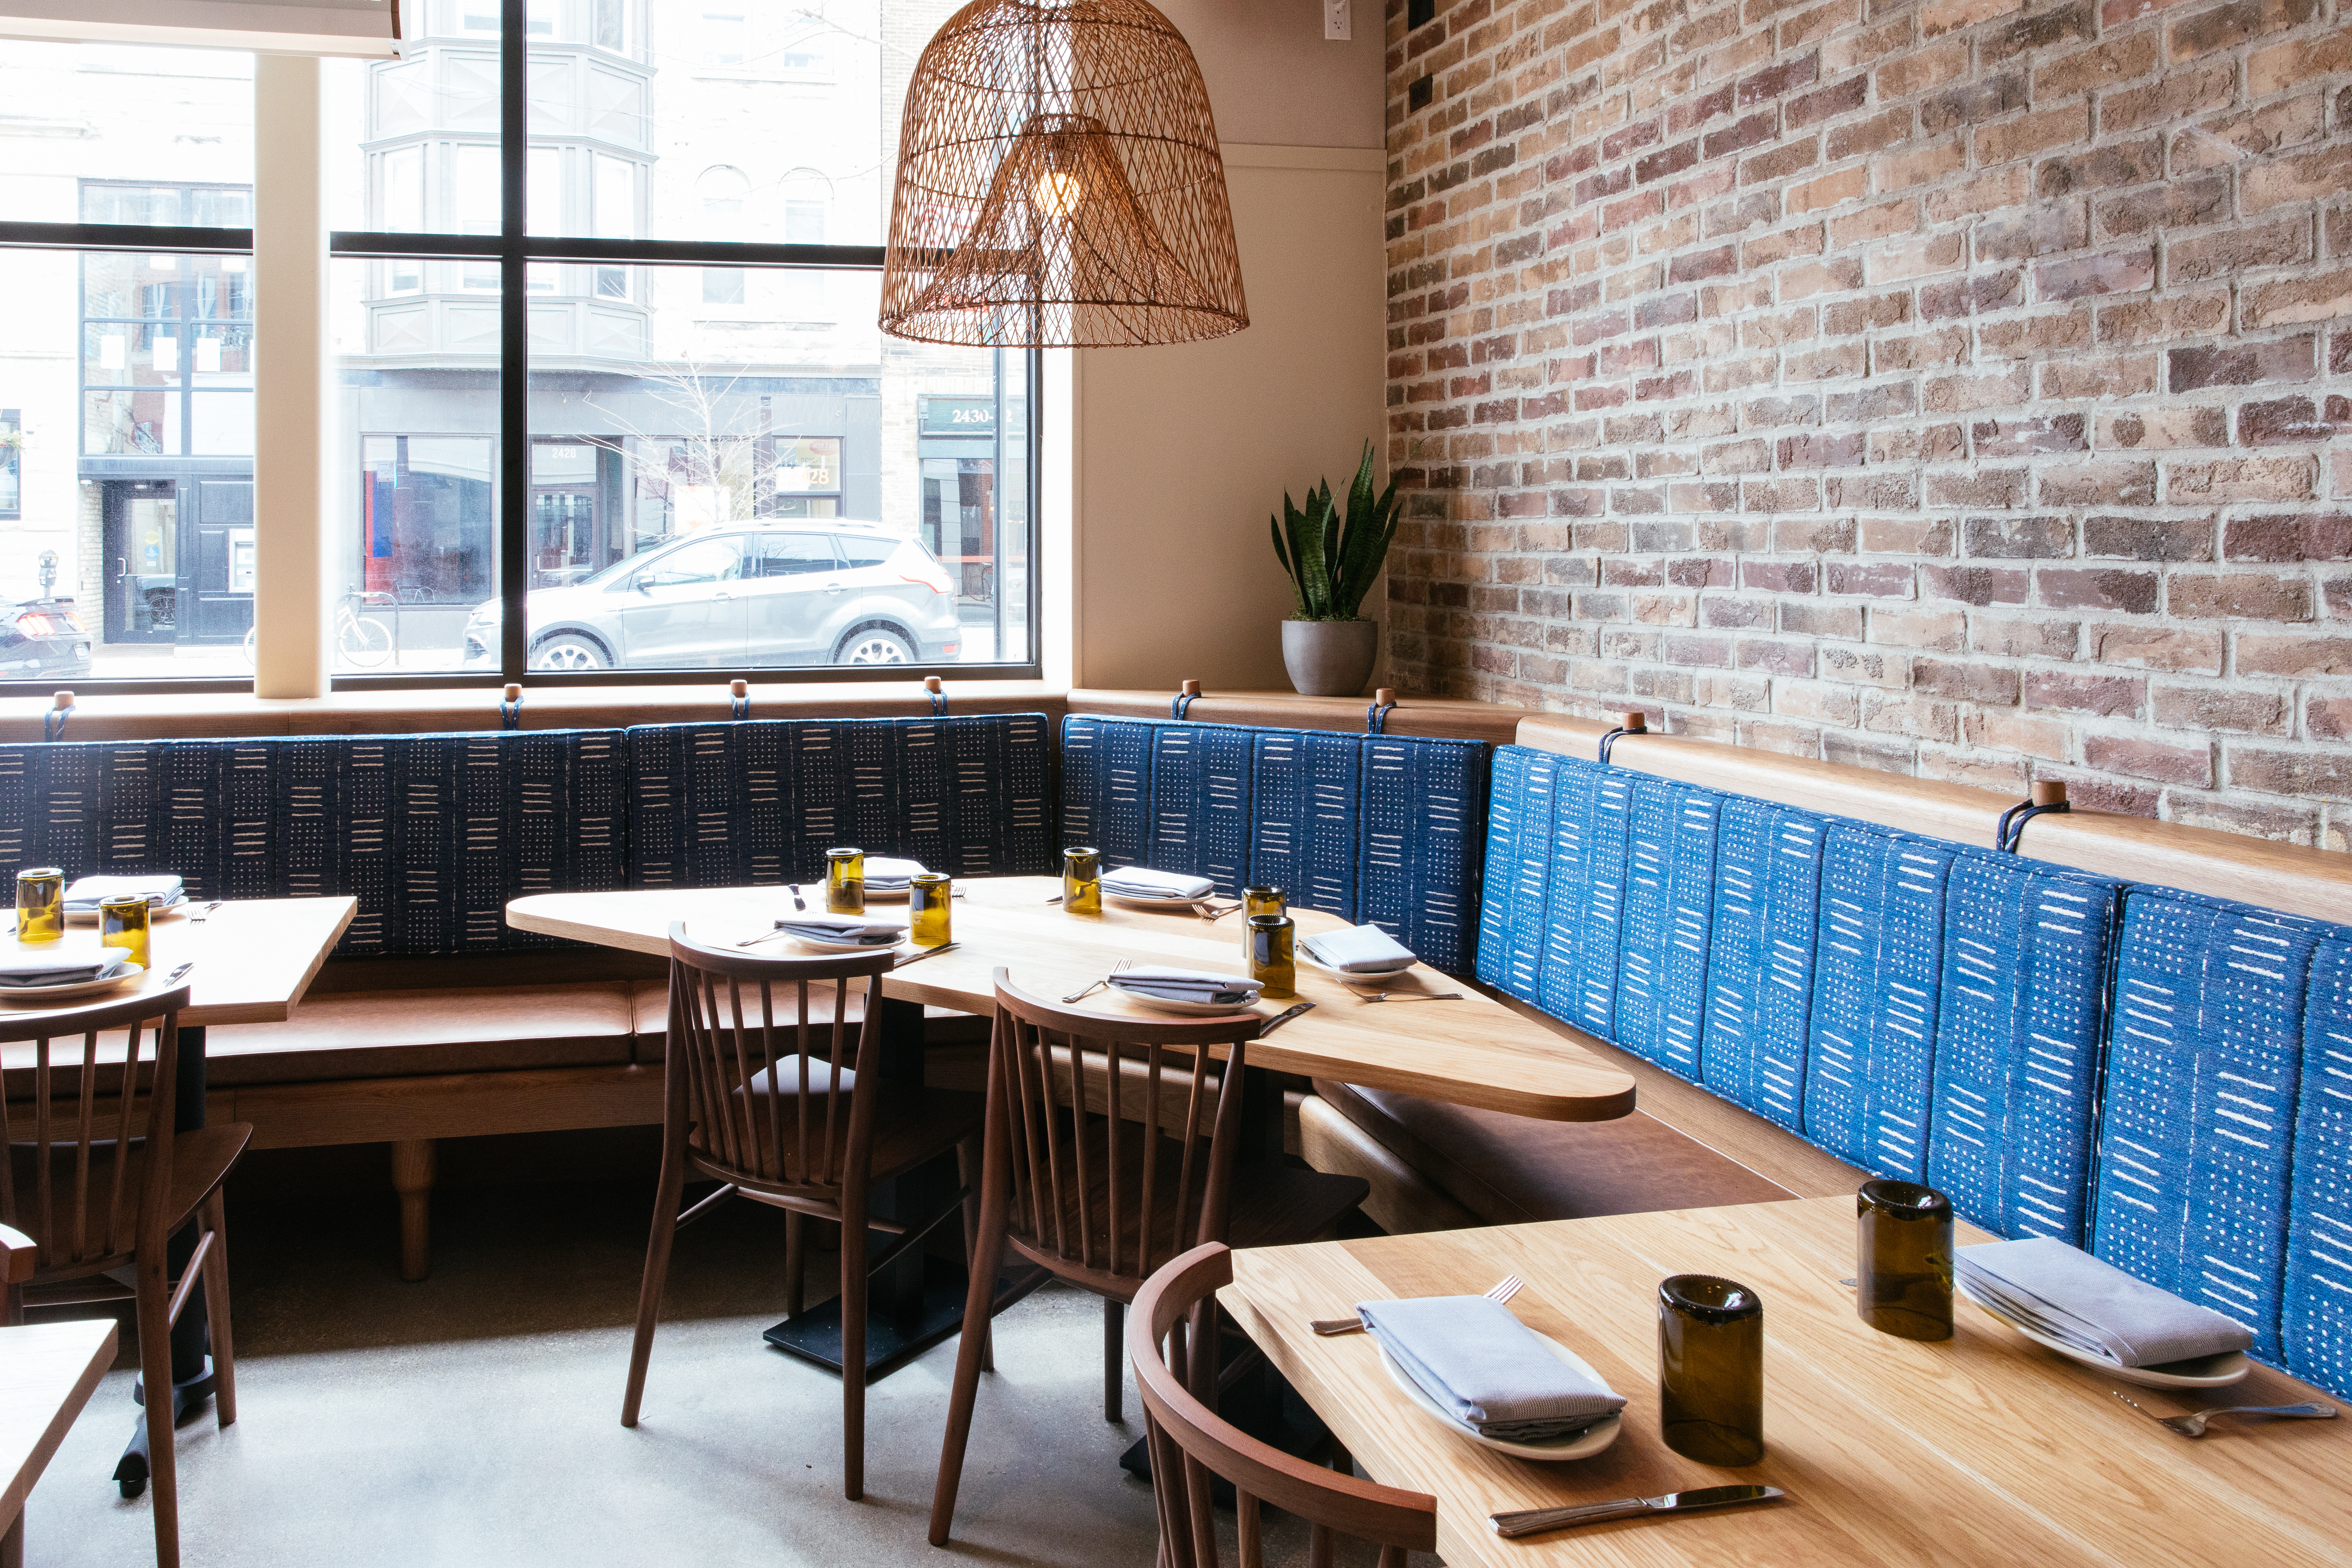 A dining room with a long wooden banquette